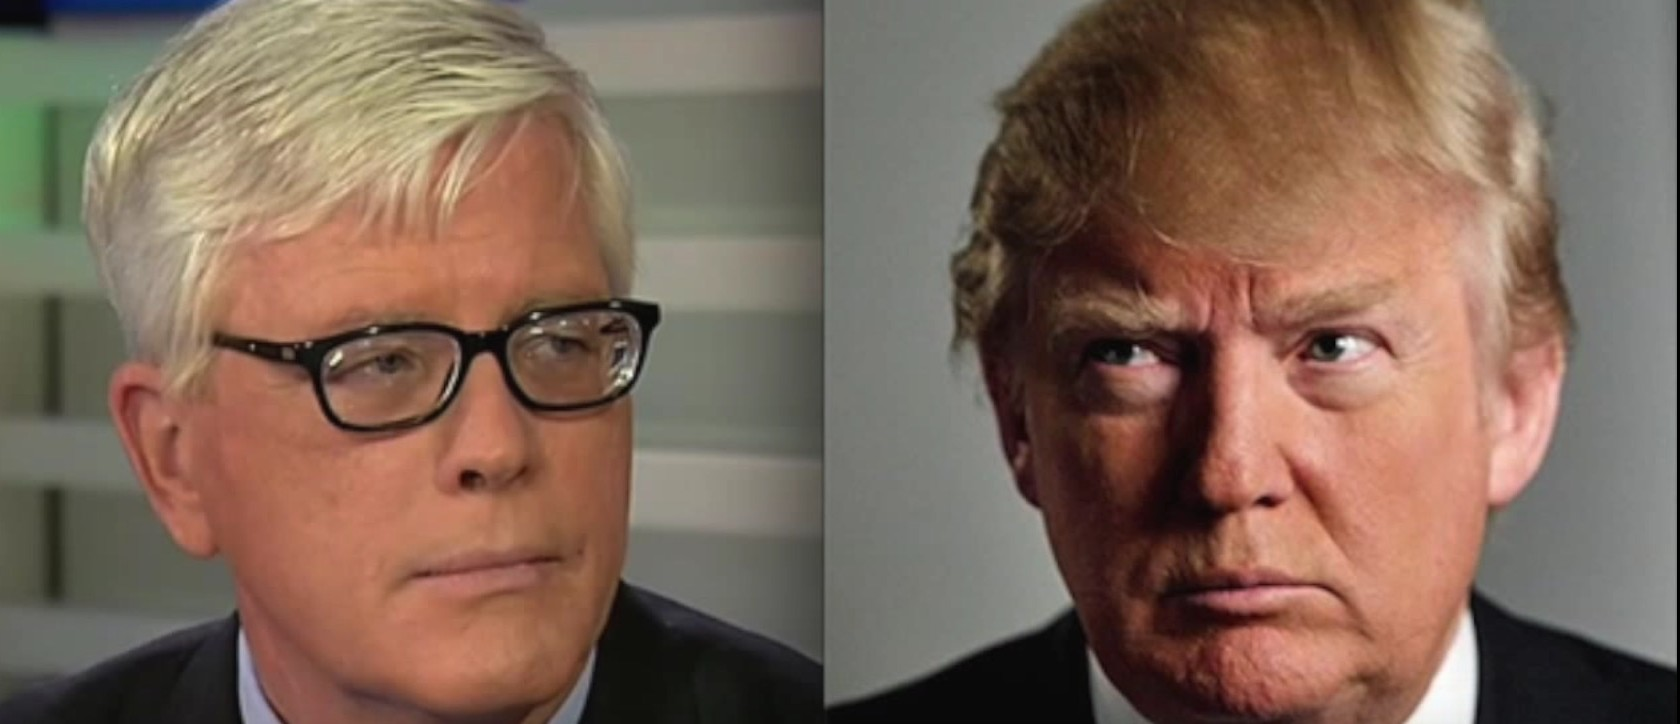 Hugh Hewitt, Donald Trump, Screen shot Hugh Hewitt YouTube, 2-29-2016